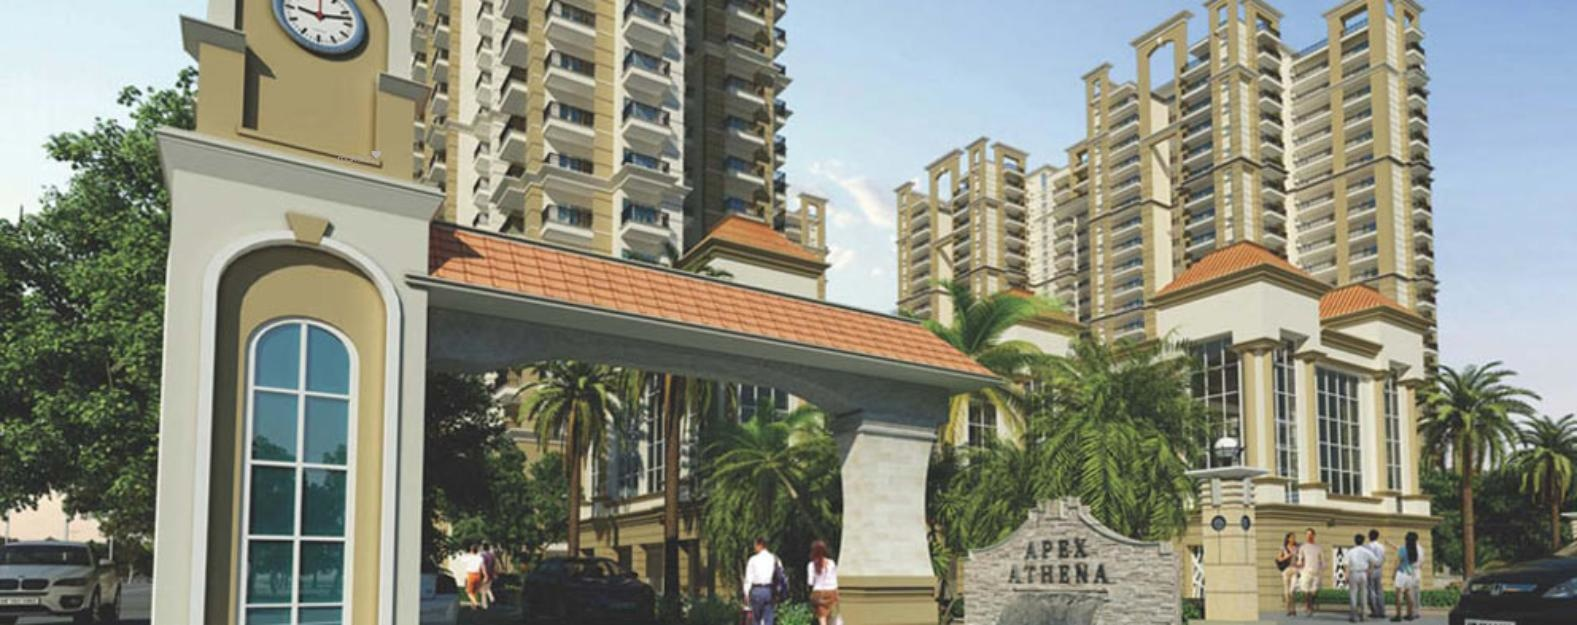 2725 sq ft 5BHK 5BHK+5T (2,725 sq ft) + Servant Room Property By Ajmani Estates In Athena, Sector 75